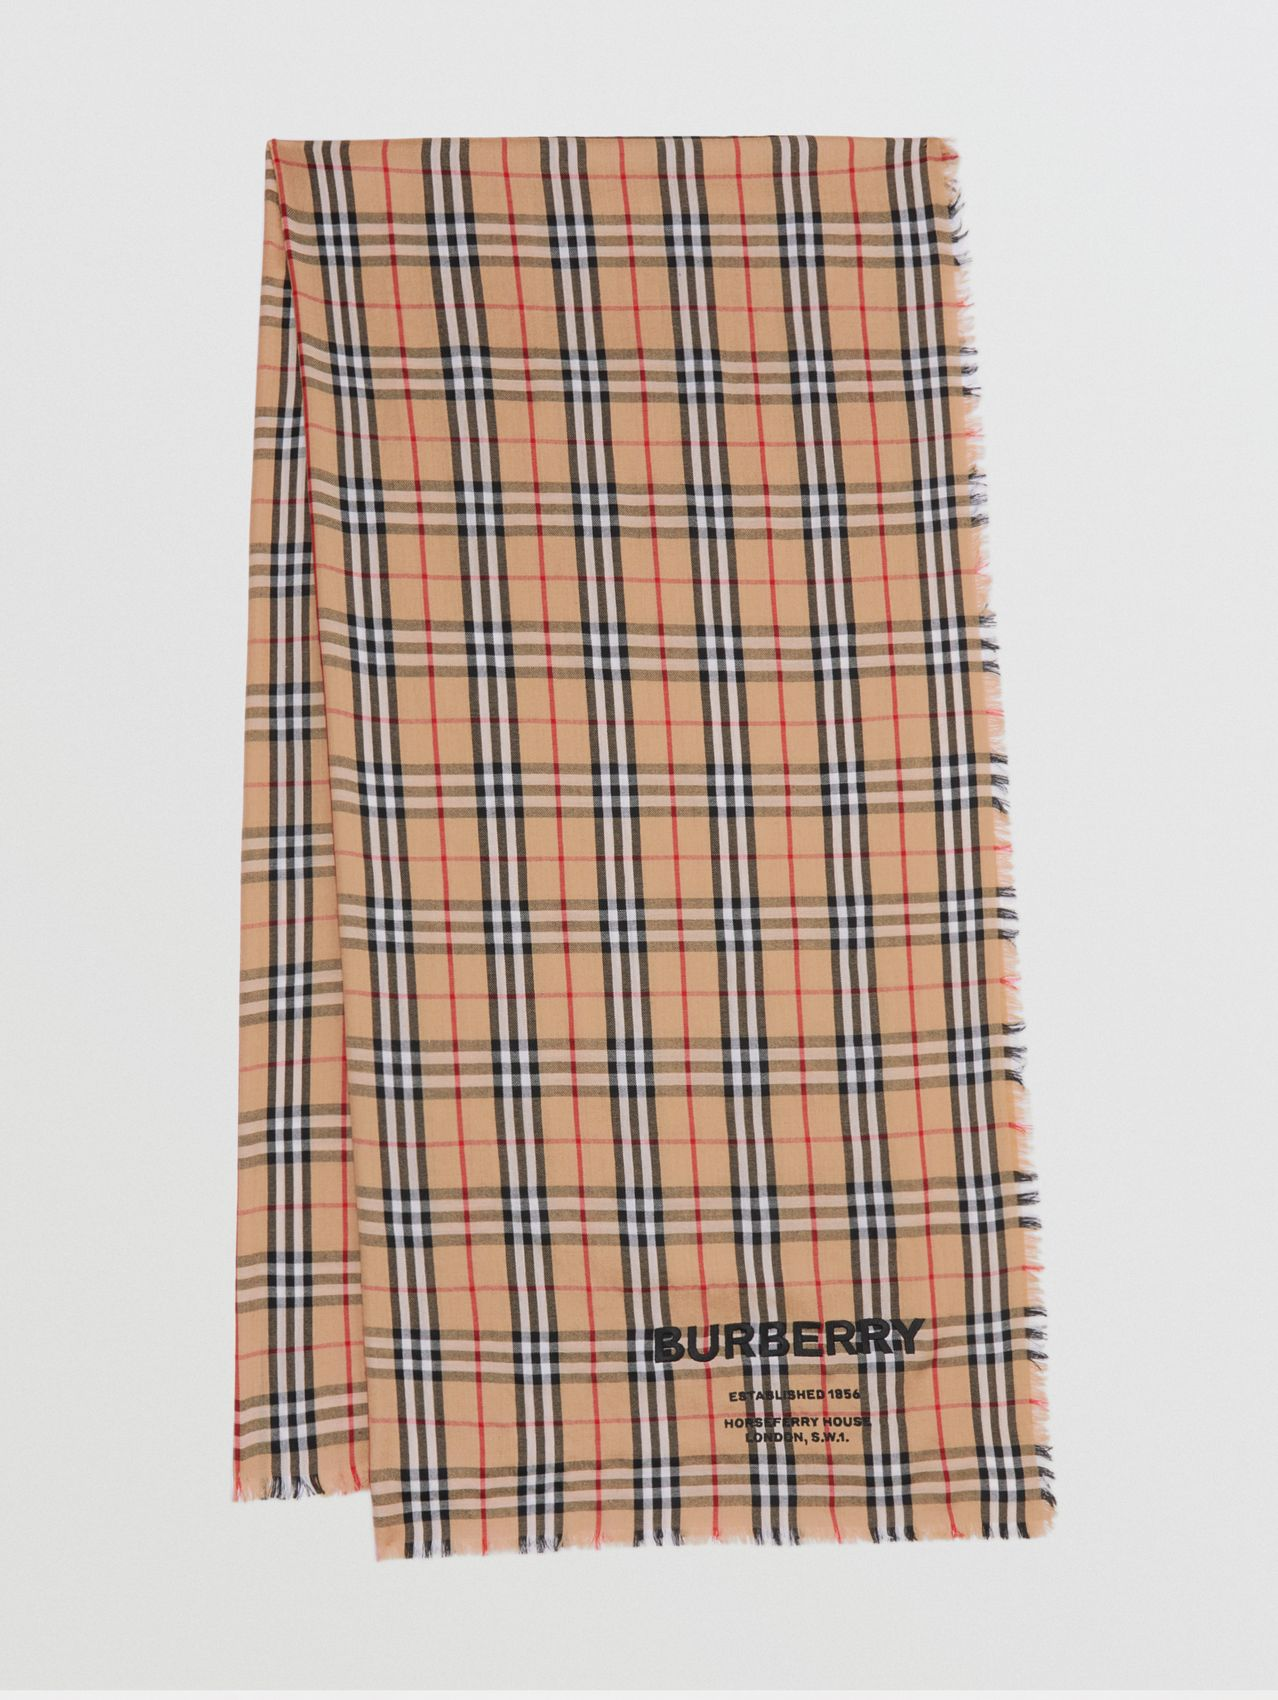 Embroidered Vintage Check Lightweight Cashmere Scarf in Camel